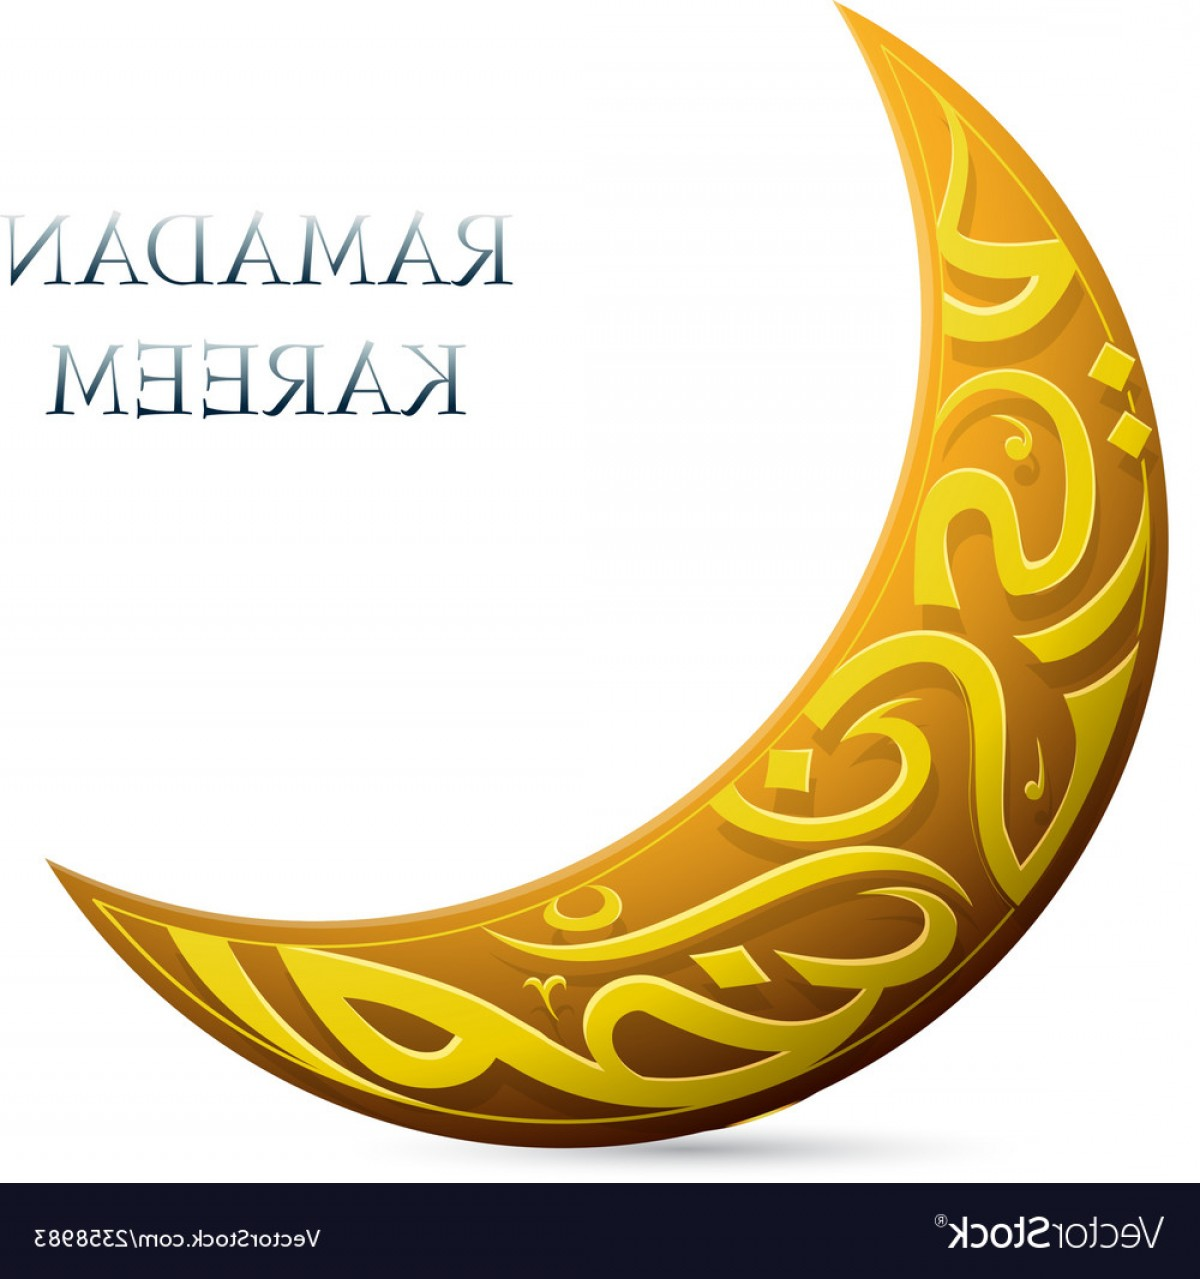 Cresent Moon Vector: Ramadan Kareem Greetings Shaped Into Crescent Moon Vector